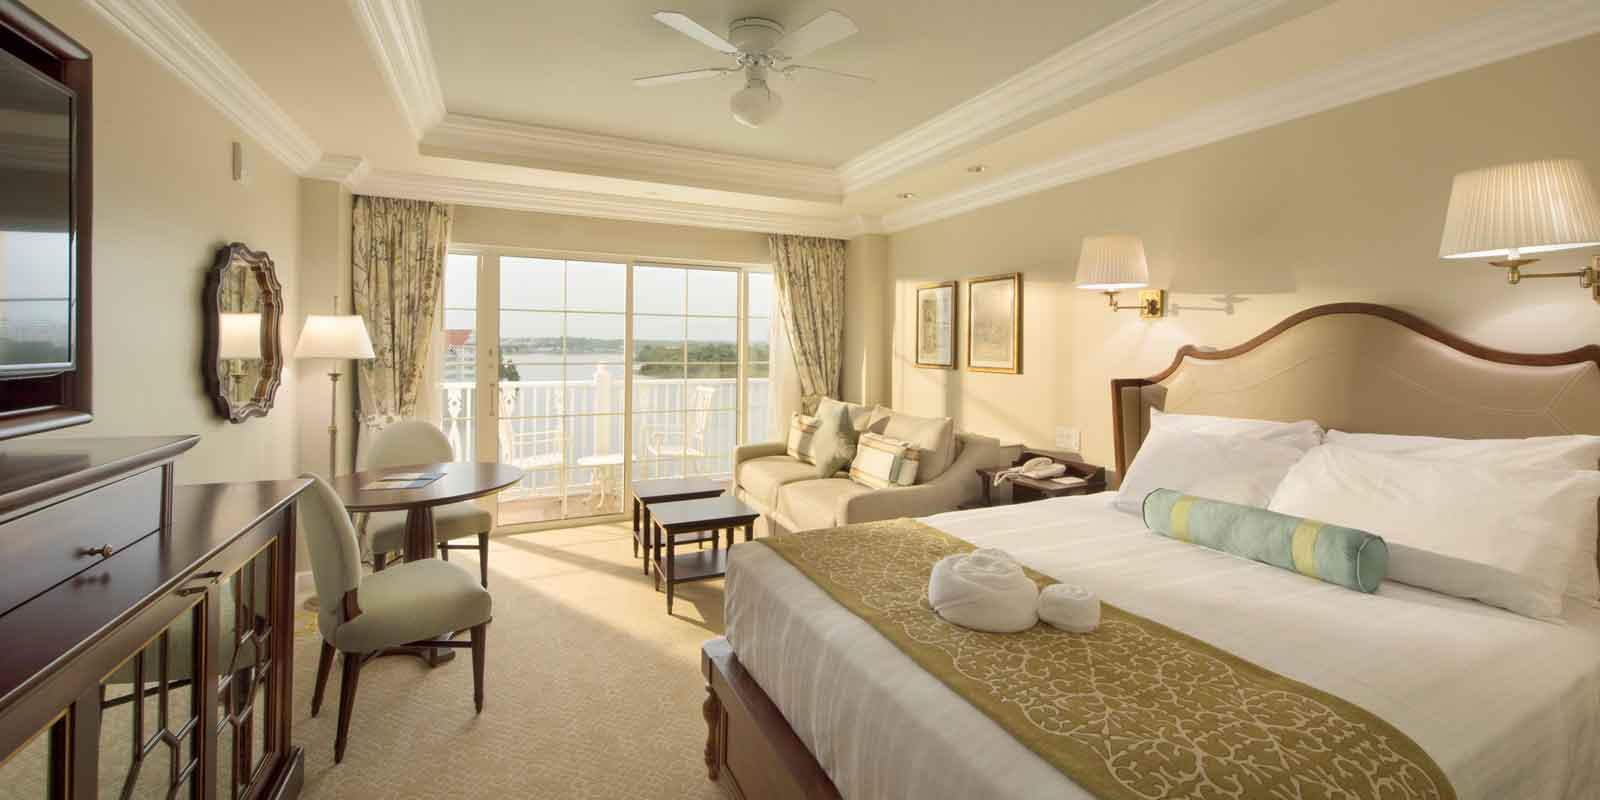 Landscape view of a room at The Villas of the Grand Floridian Spa & Resort at Disney World.